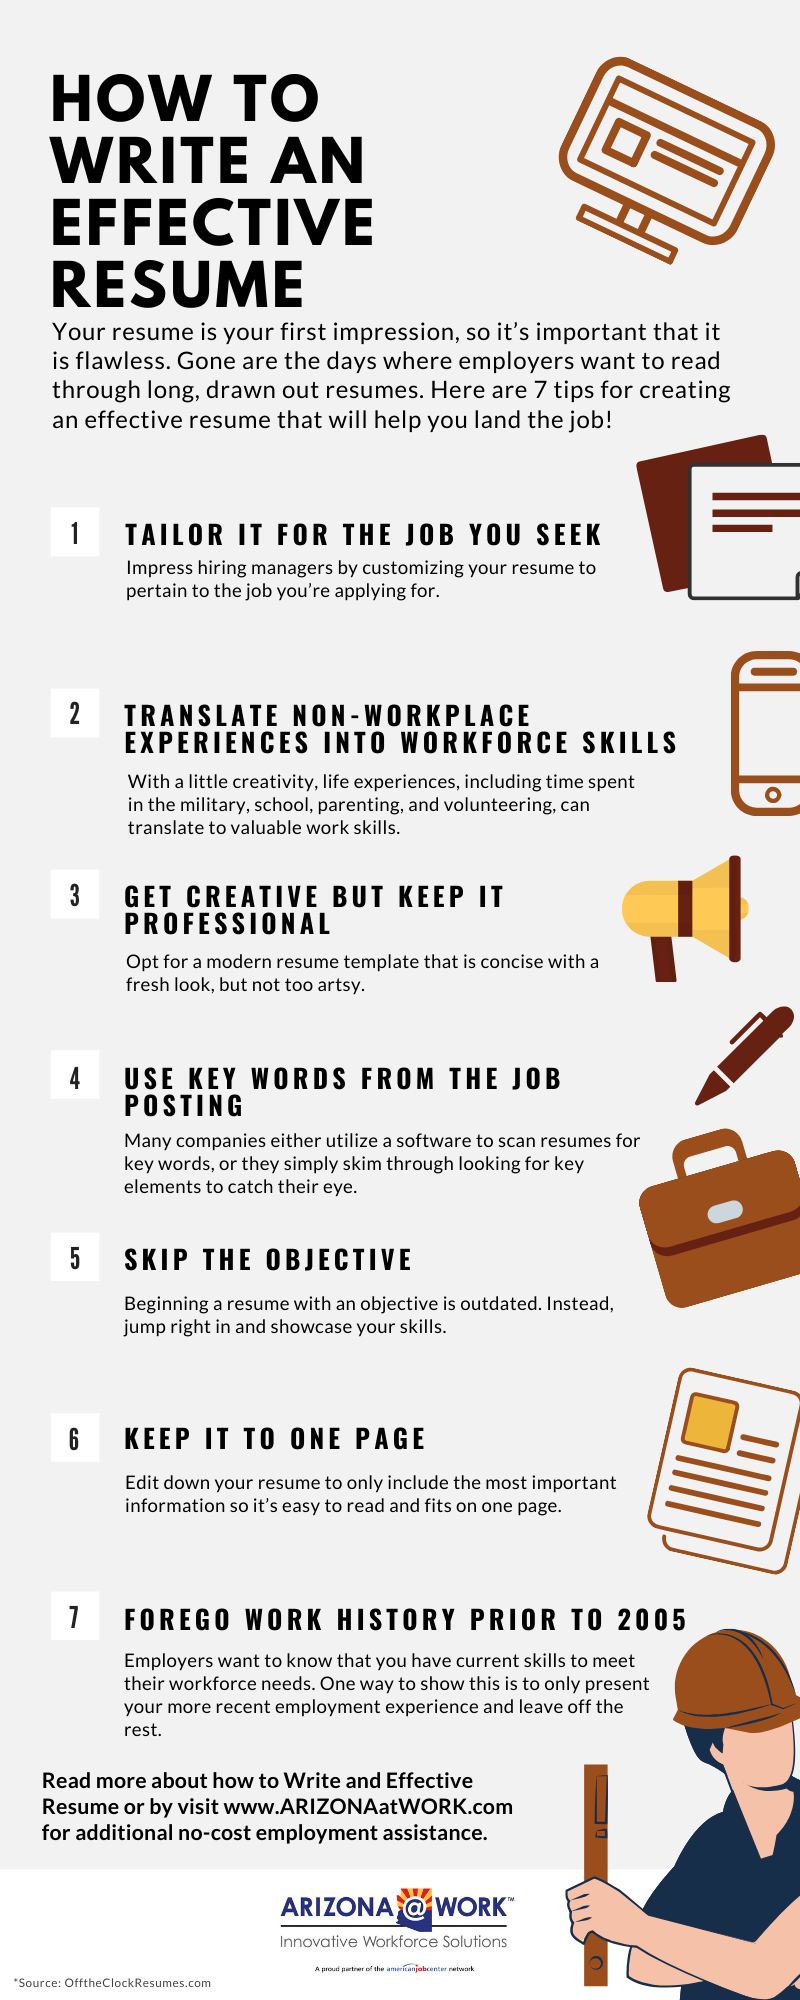 Information about how to write an effective resume